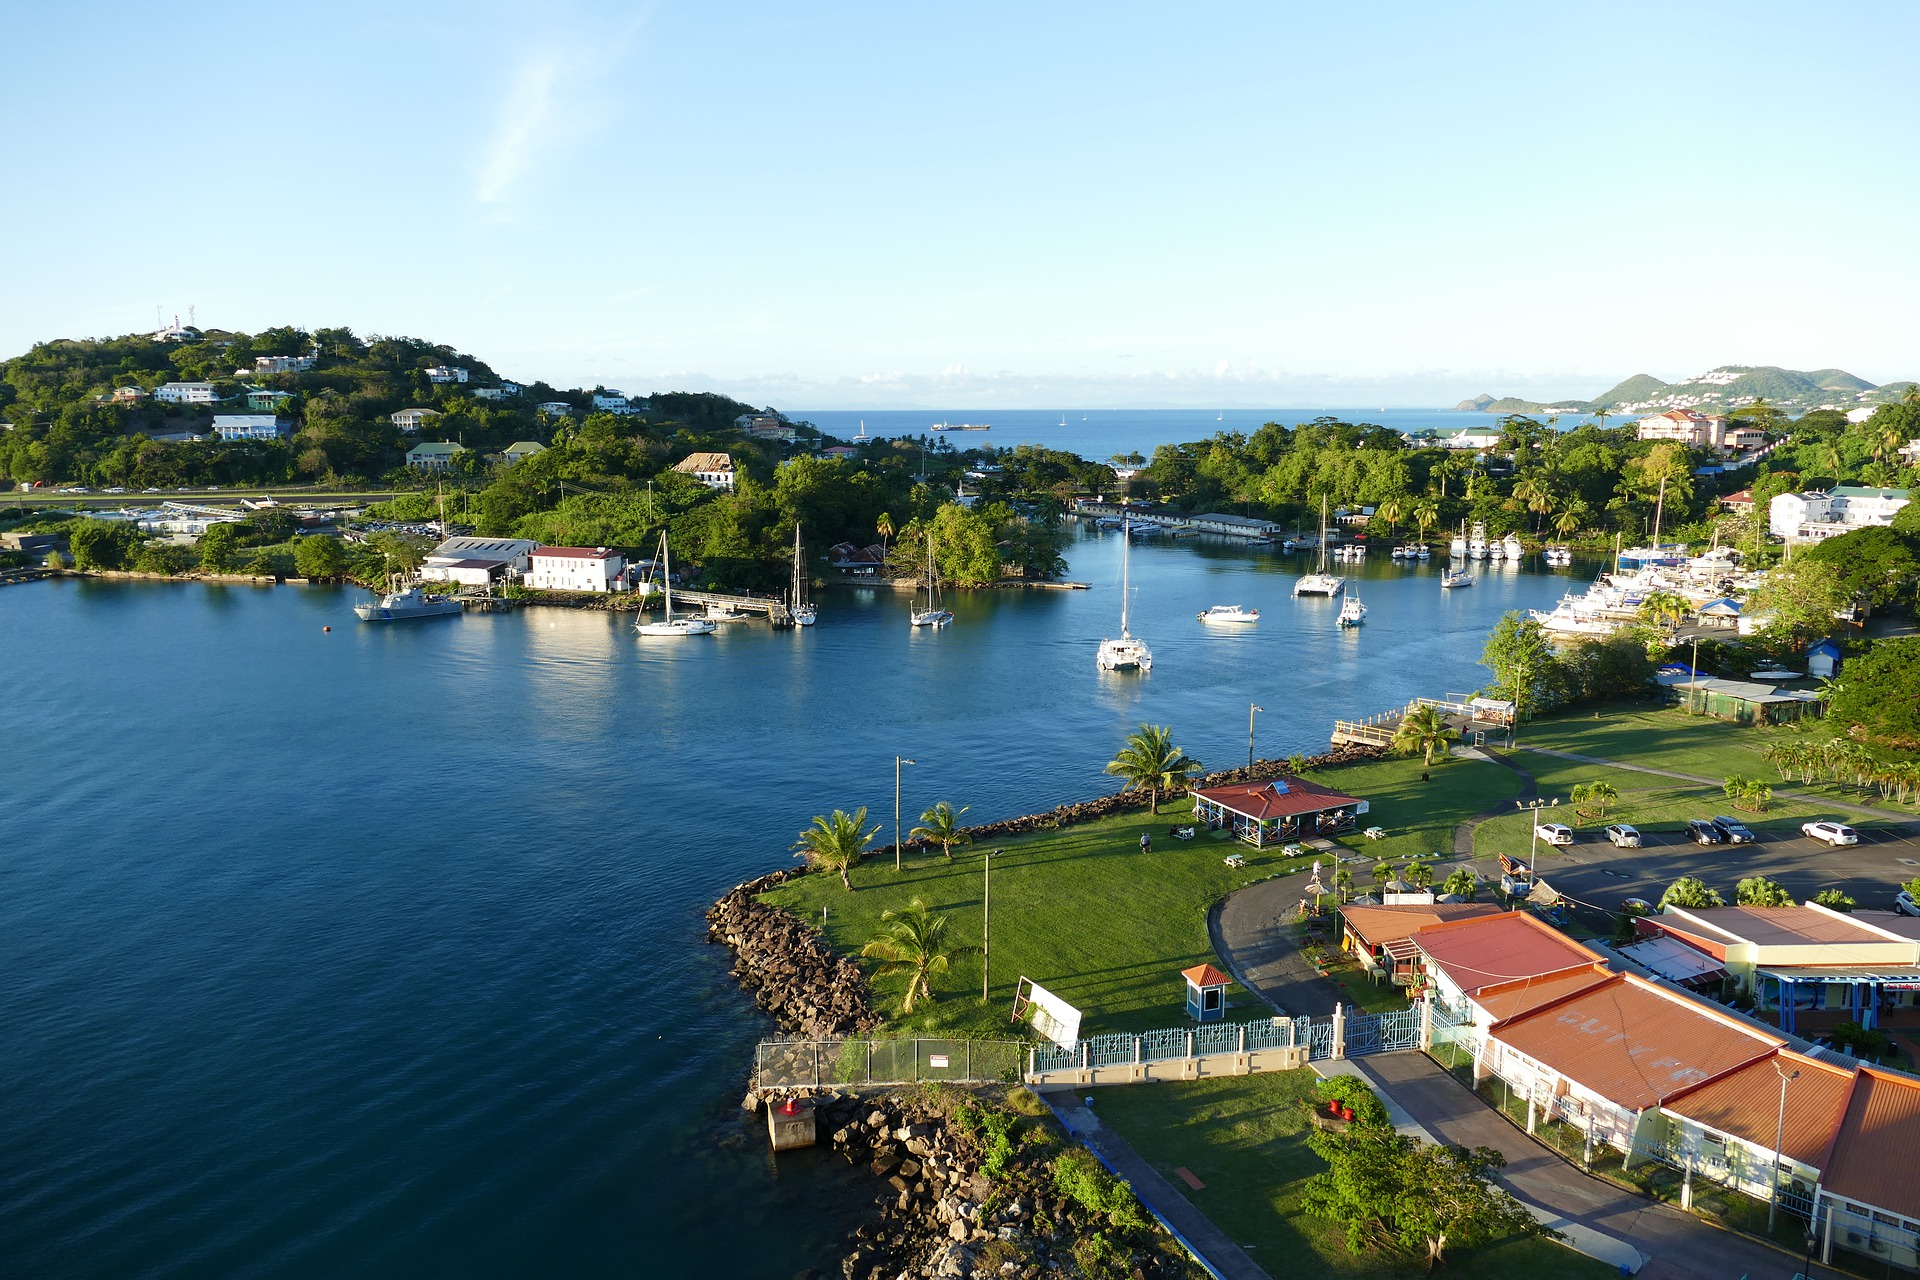 st-lucia-4911632_1920